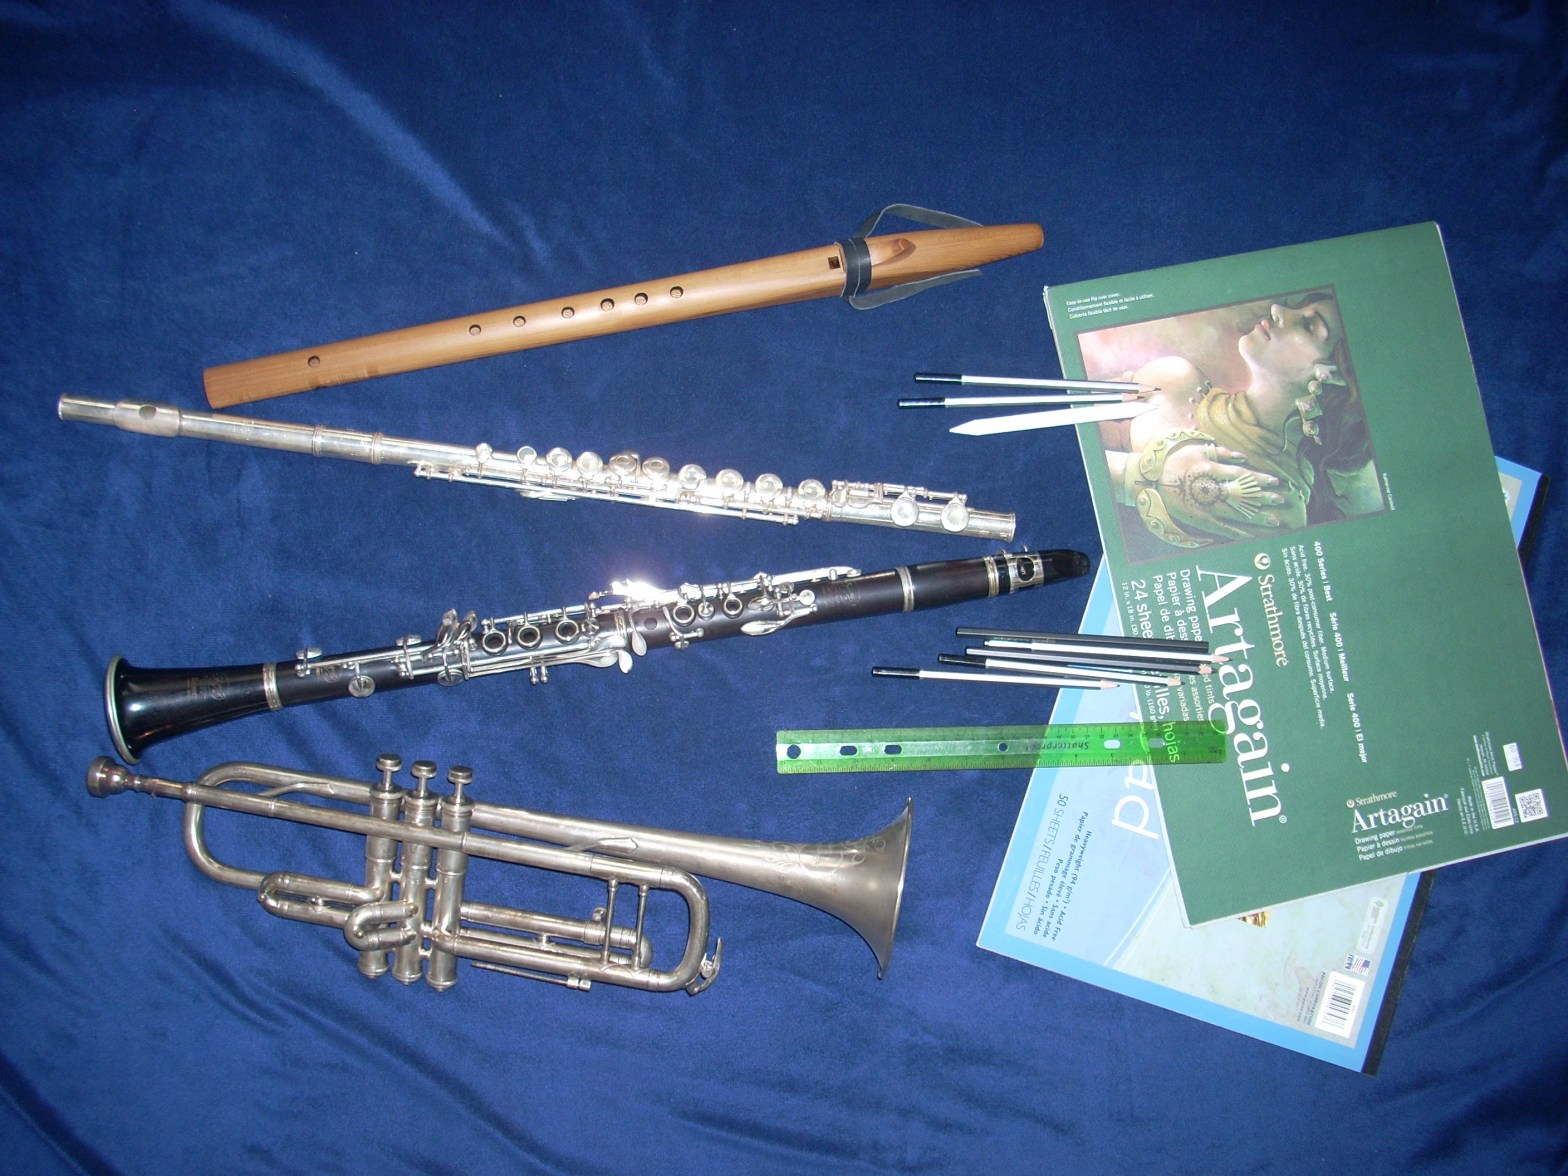 Creative Problem Solving is possible withA Native American flute, and the traditional instruments: flute, clarinet and trumpet as well as sketch pads and drawing supplies are pictured.